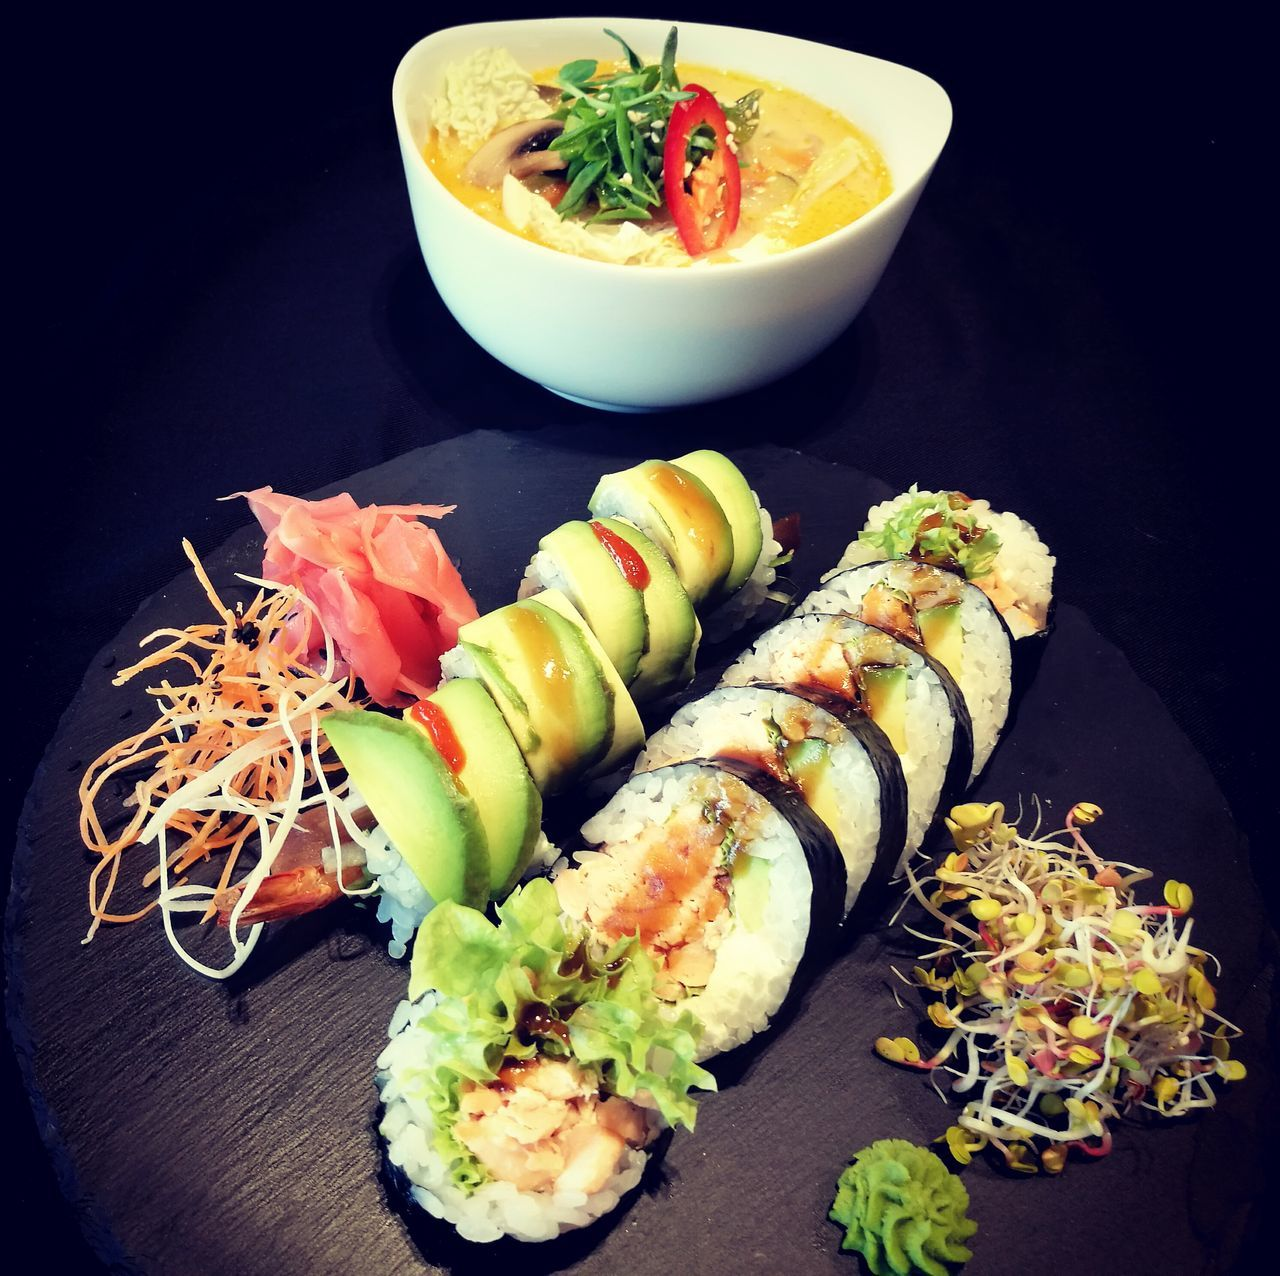 Freshness Healthy Eating Ready-to-eat Food Food And Drink Black Background No People Plate Indoors  Close-up sushi Lunch maki tasty food Sushilover Sushilovers